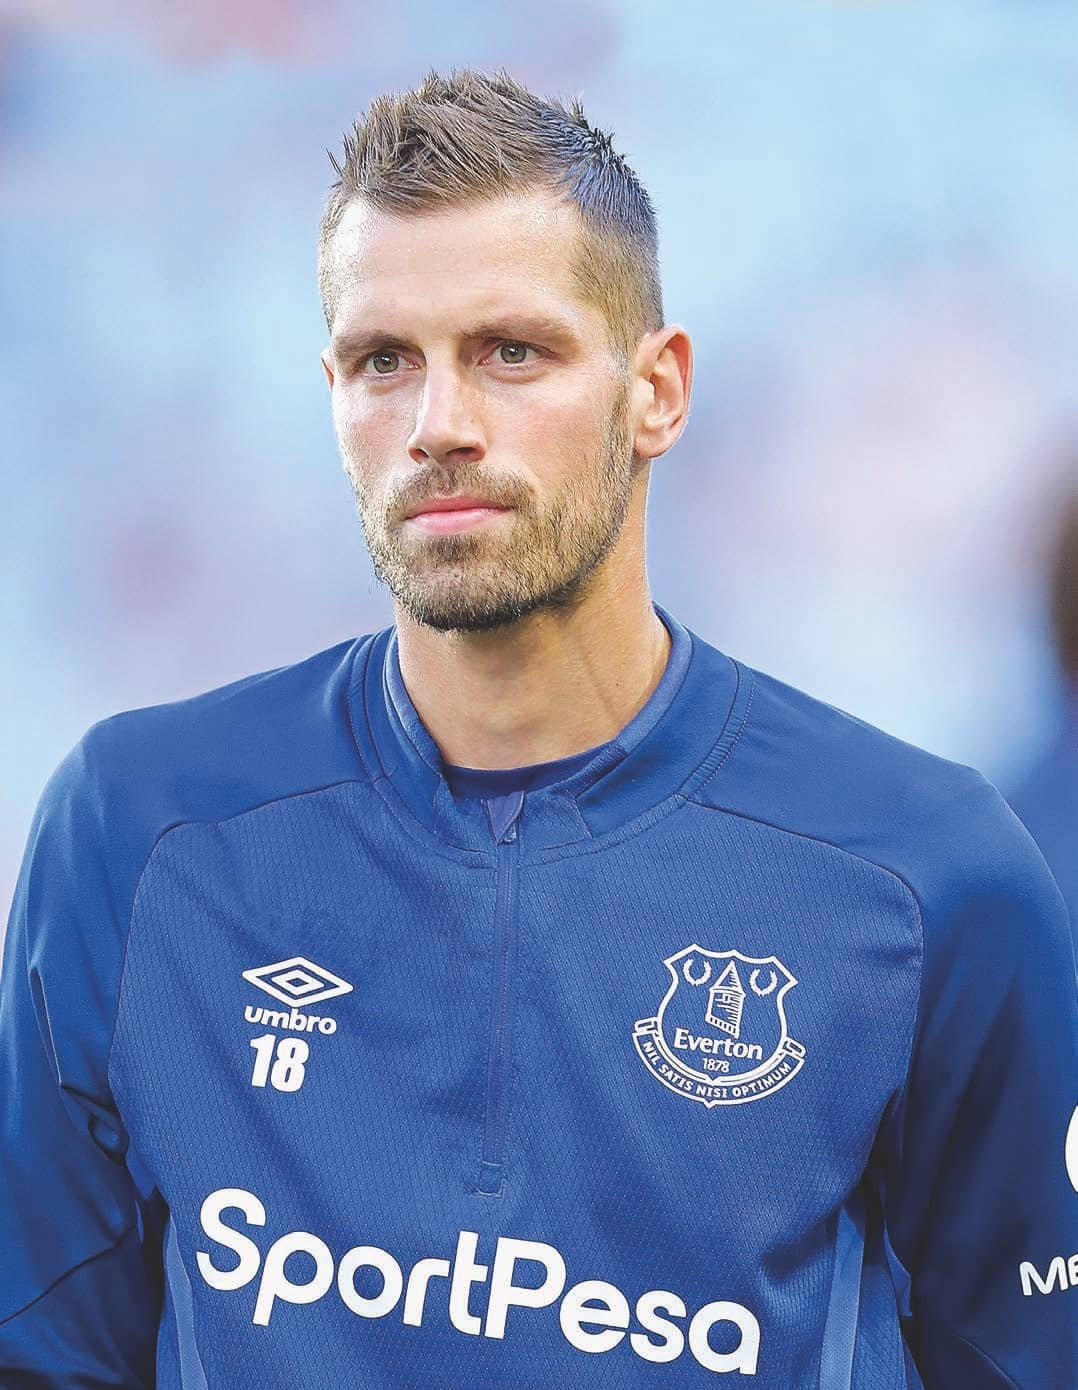 The Real Morgan Schneiderlin